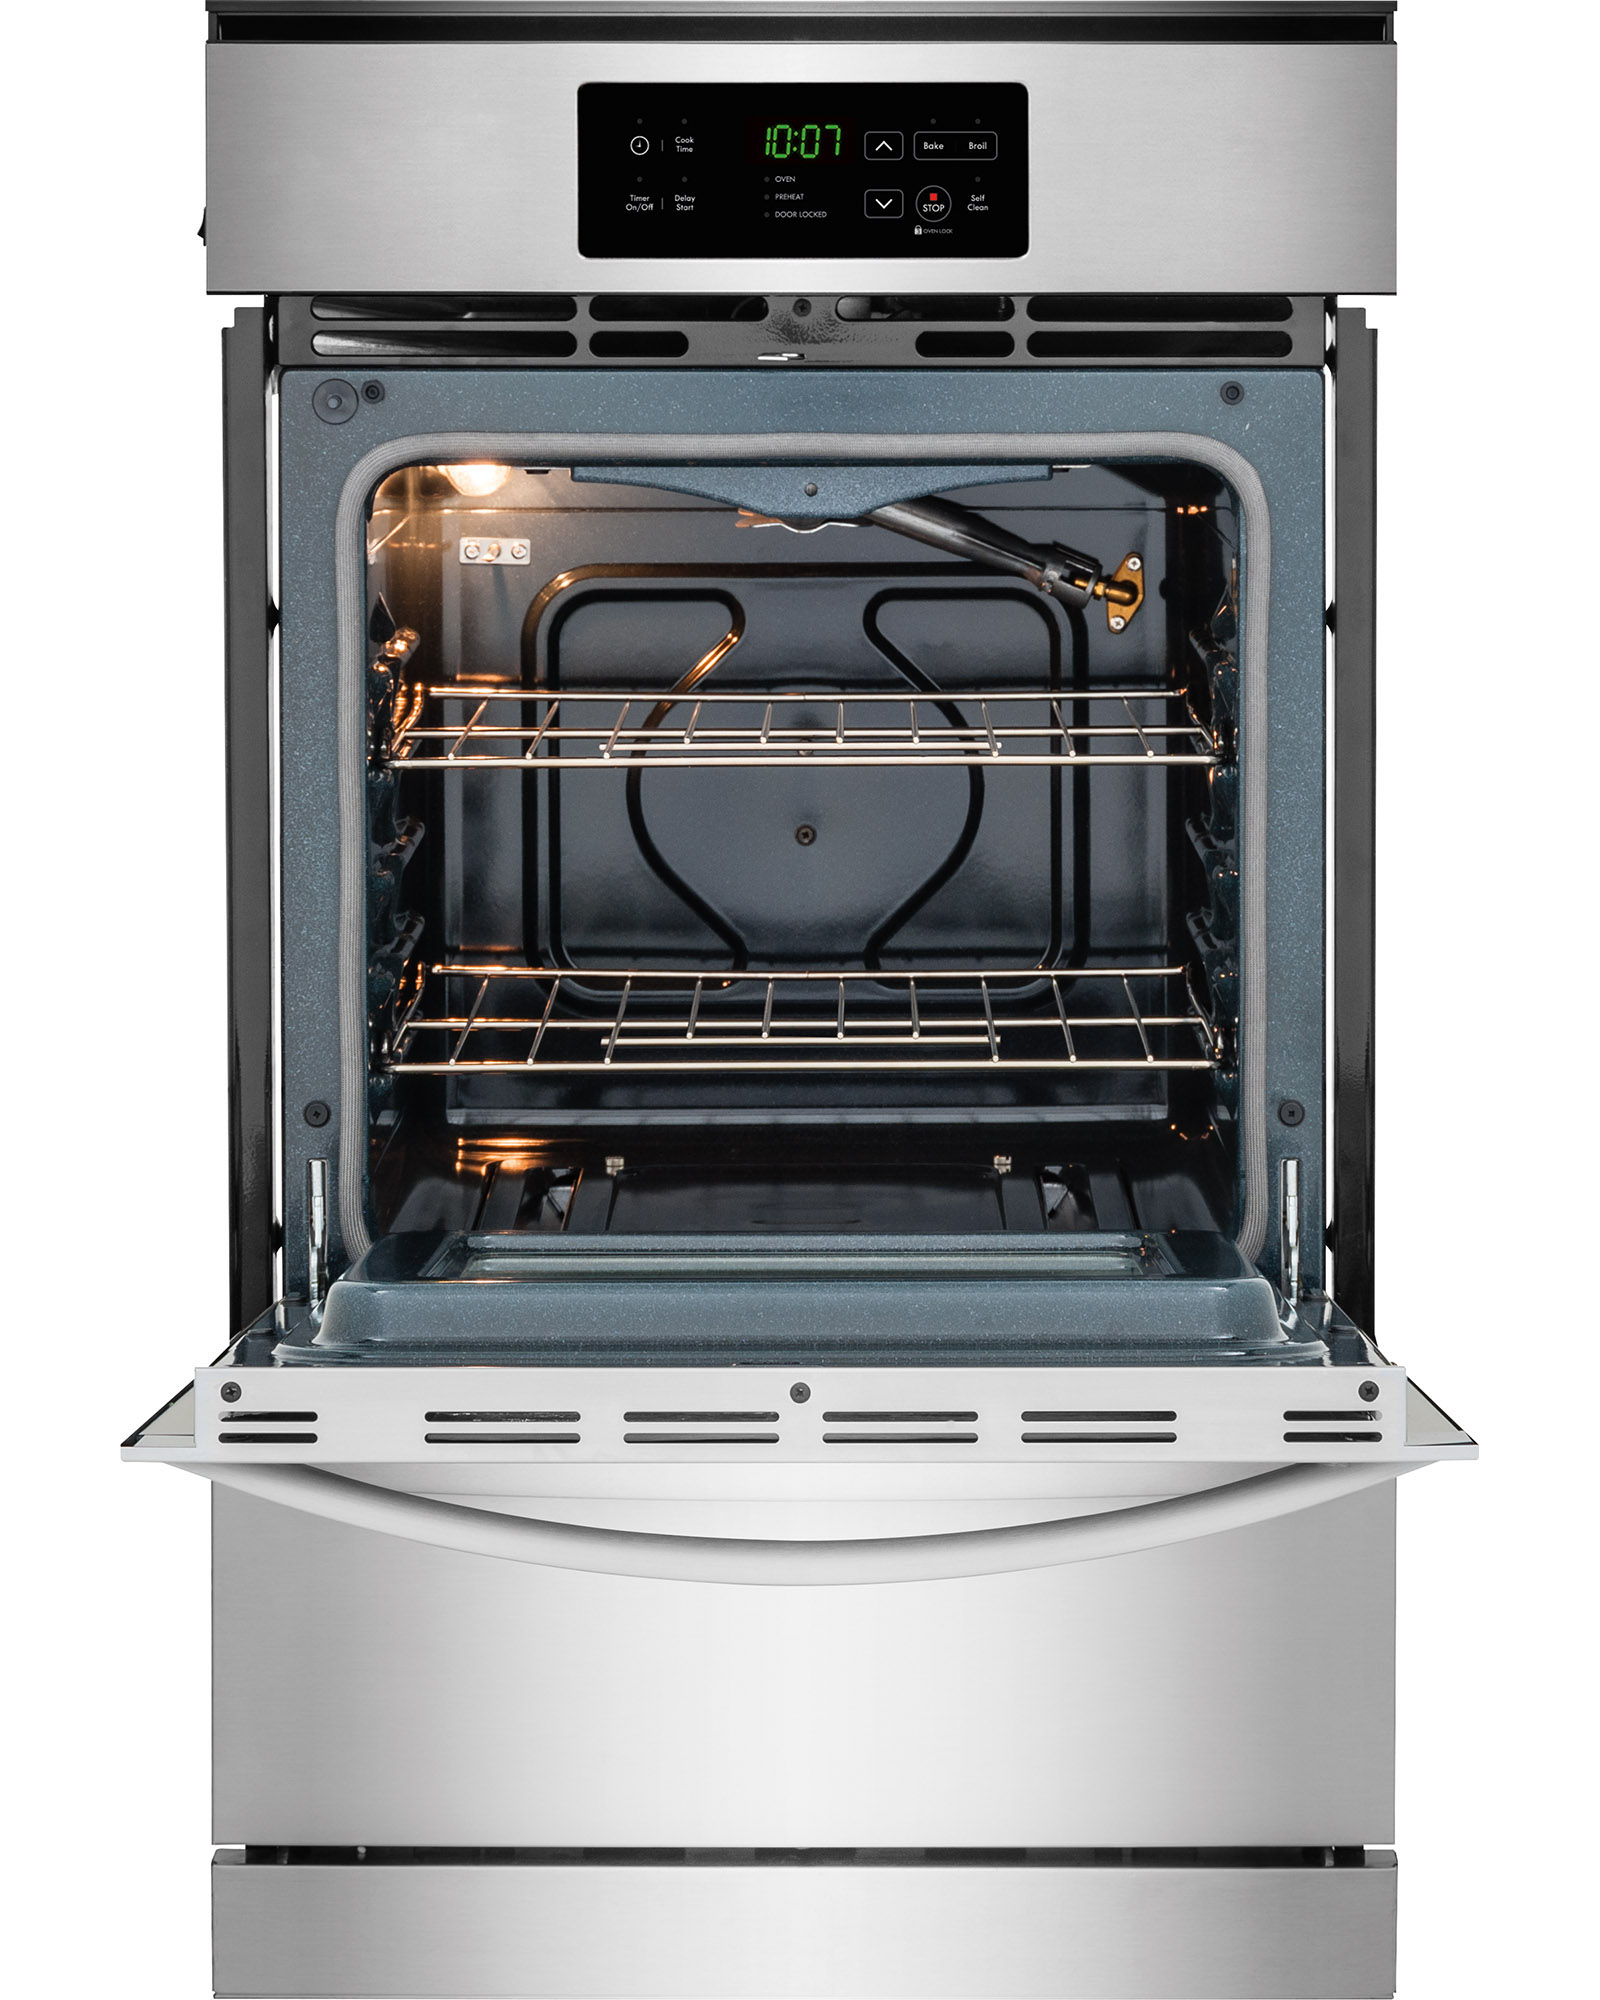 """Kenmore 40303 24"""" Gas Wall Oven - Stainless Steel"""